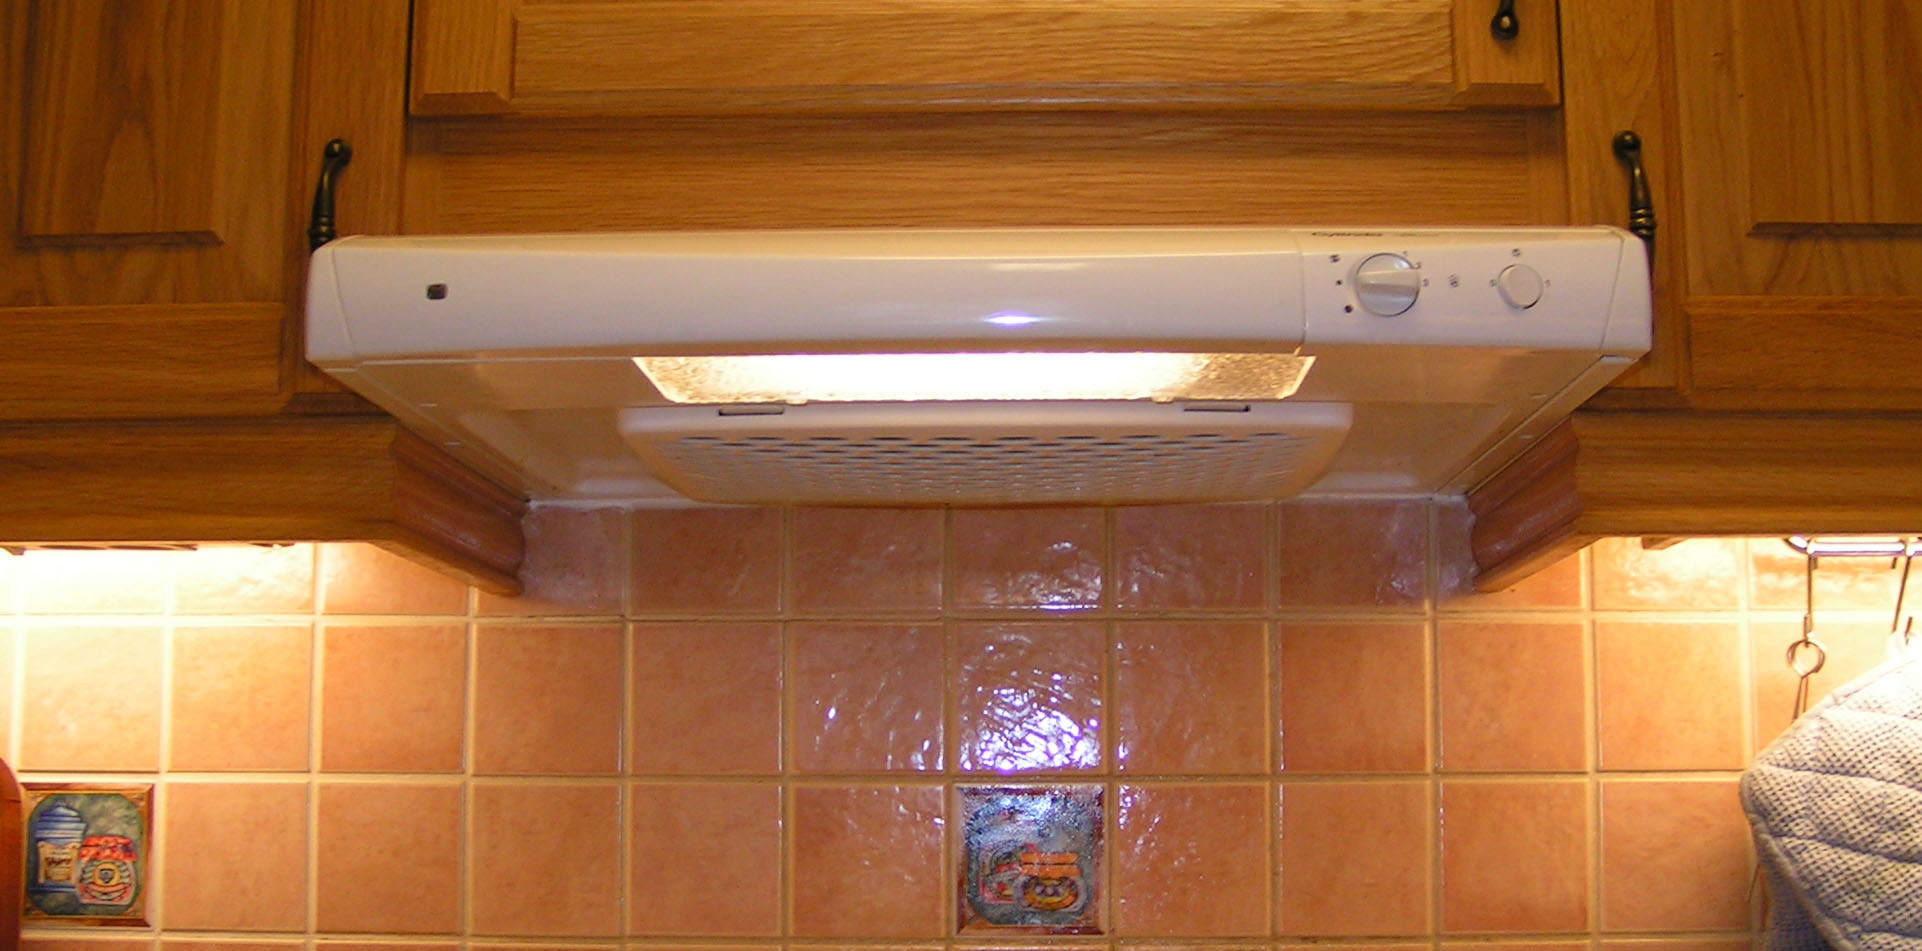 Cook bathroom exhaust fans - Kitchen Exhaust Fan To Be More Precise A Kitchen Hood Exhaust Fan